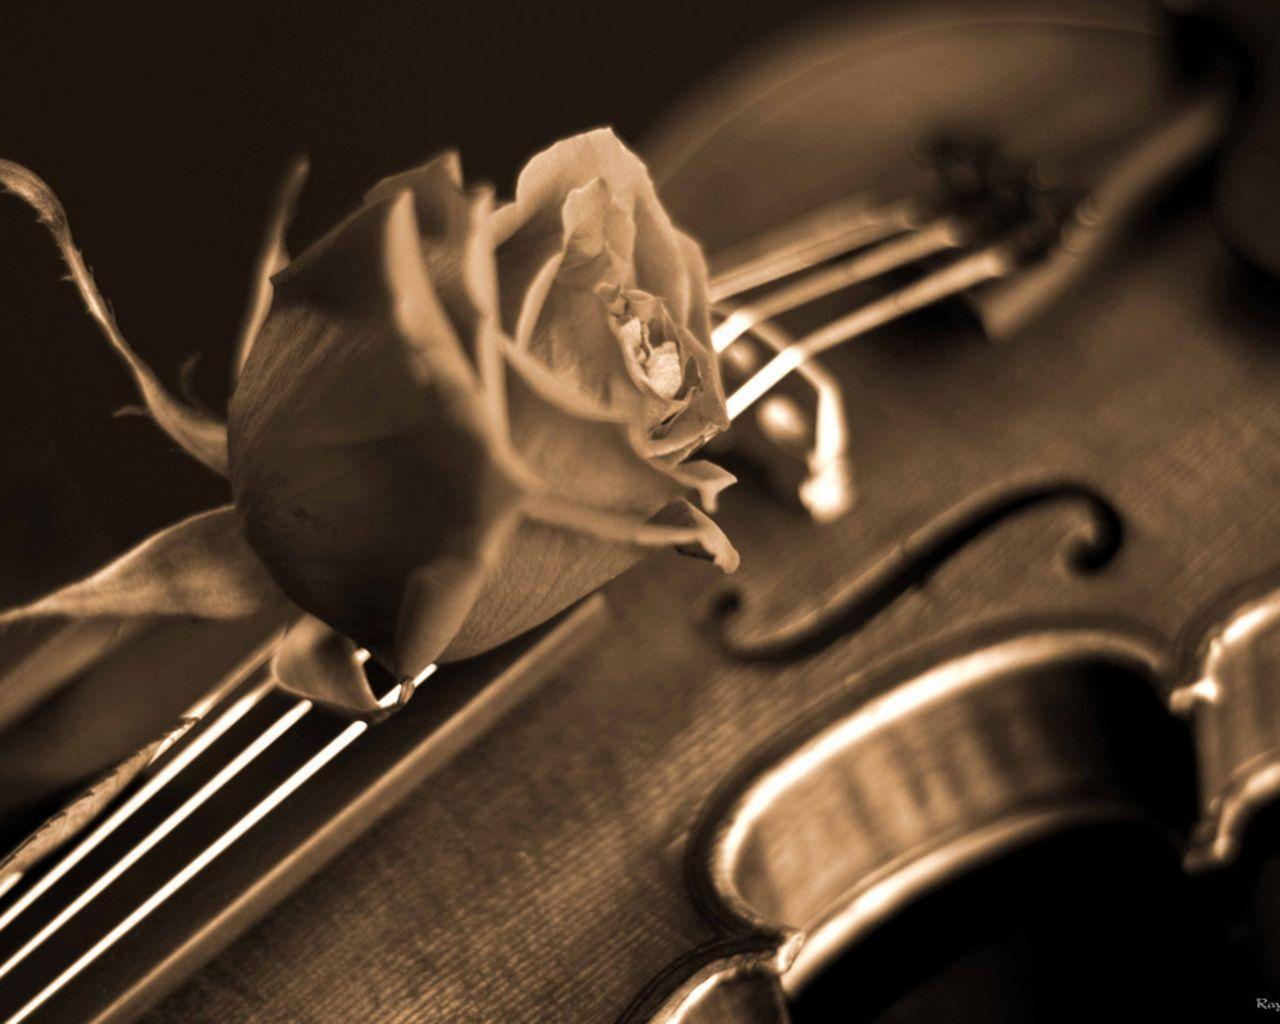 Rose and Violin Wallpaper - Music Wallpaper (28520430) - Fanpop